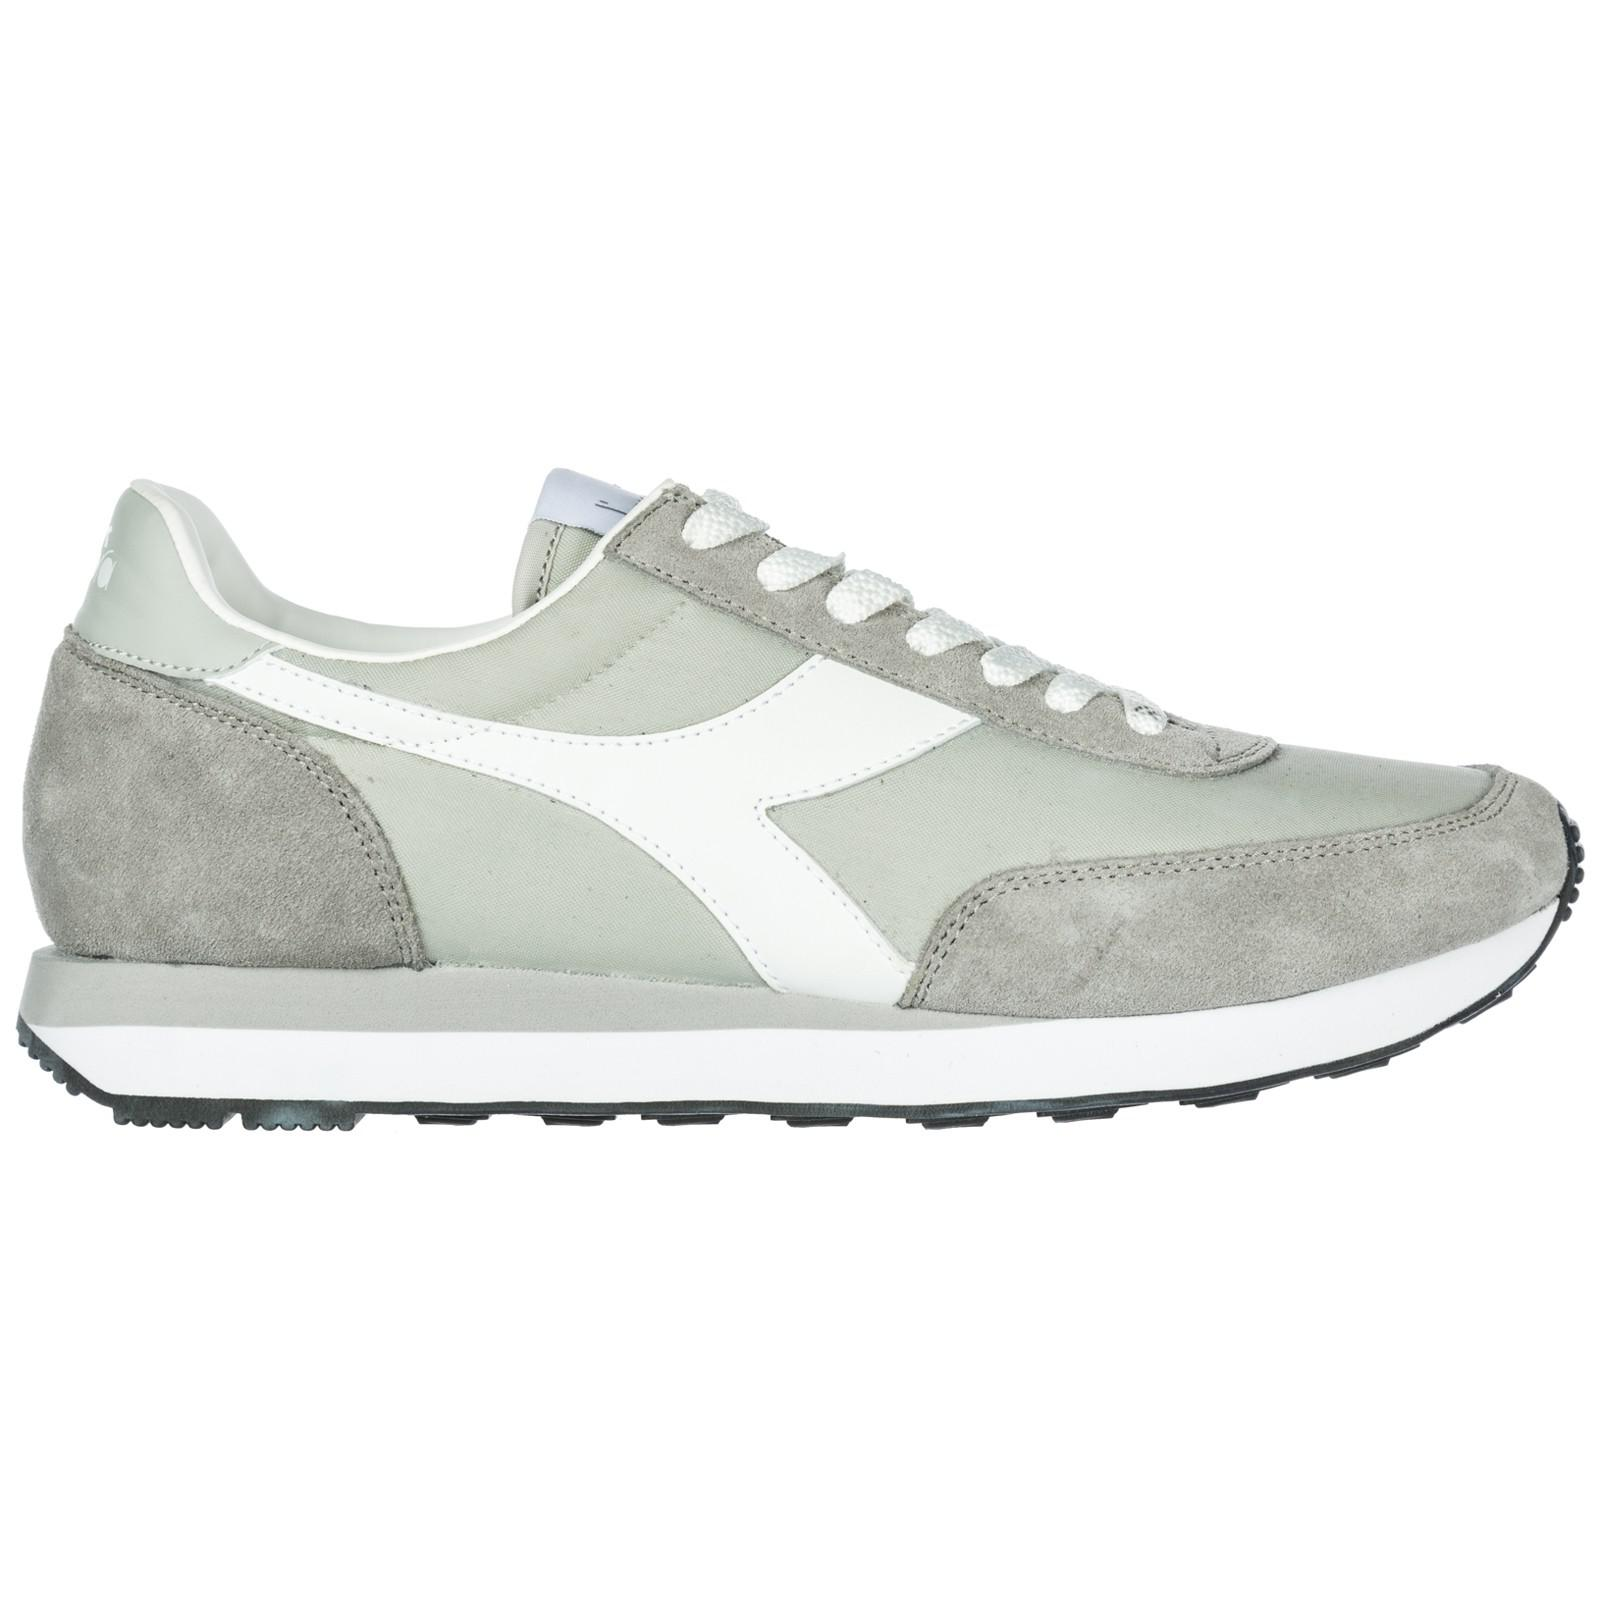 714d8c5ed29 diadora-Wind-chime-Paloma-Shoes-Suede-Trainers-Sneakers-Koala.jpeg